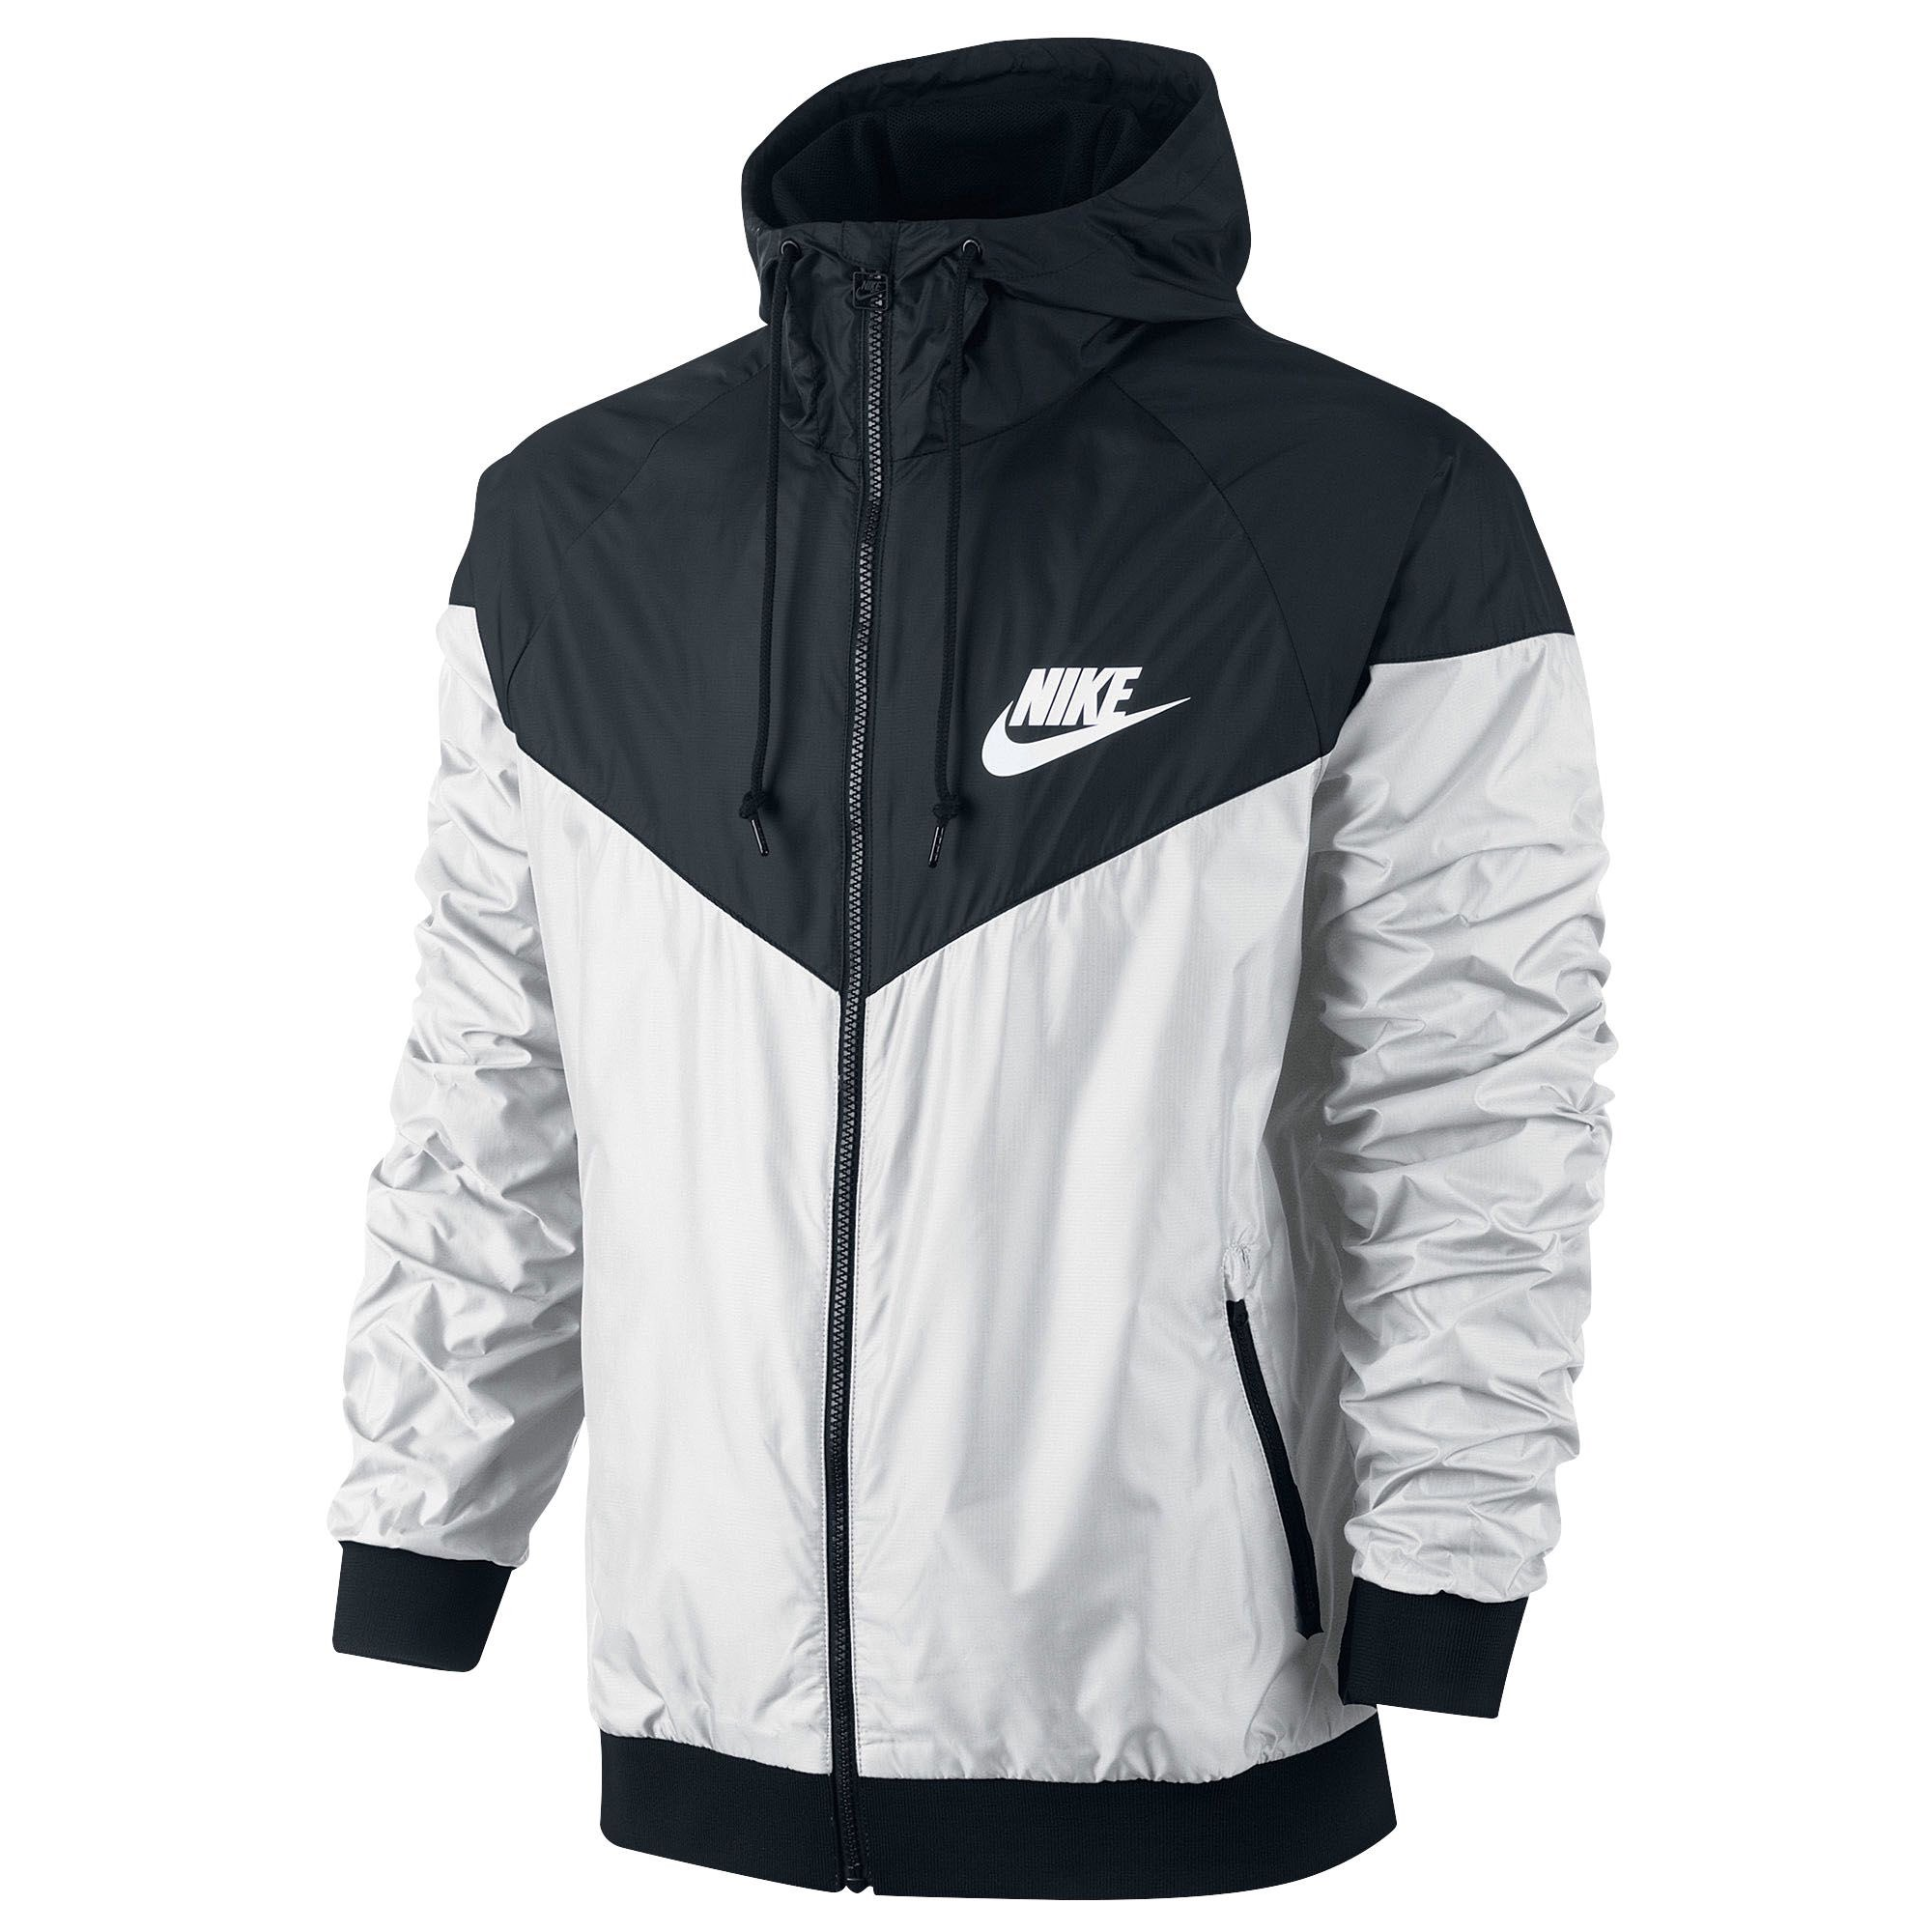 Nike Windbreakers ��  Shop https://t.co/FGxTDP1aQj  @Urbanattires ❤ https://t.co/0Ok7YWGMcx